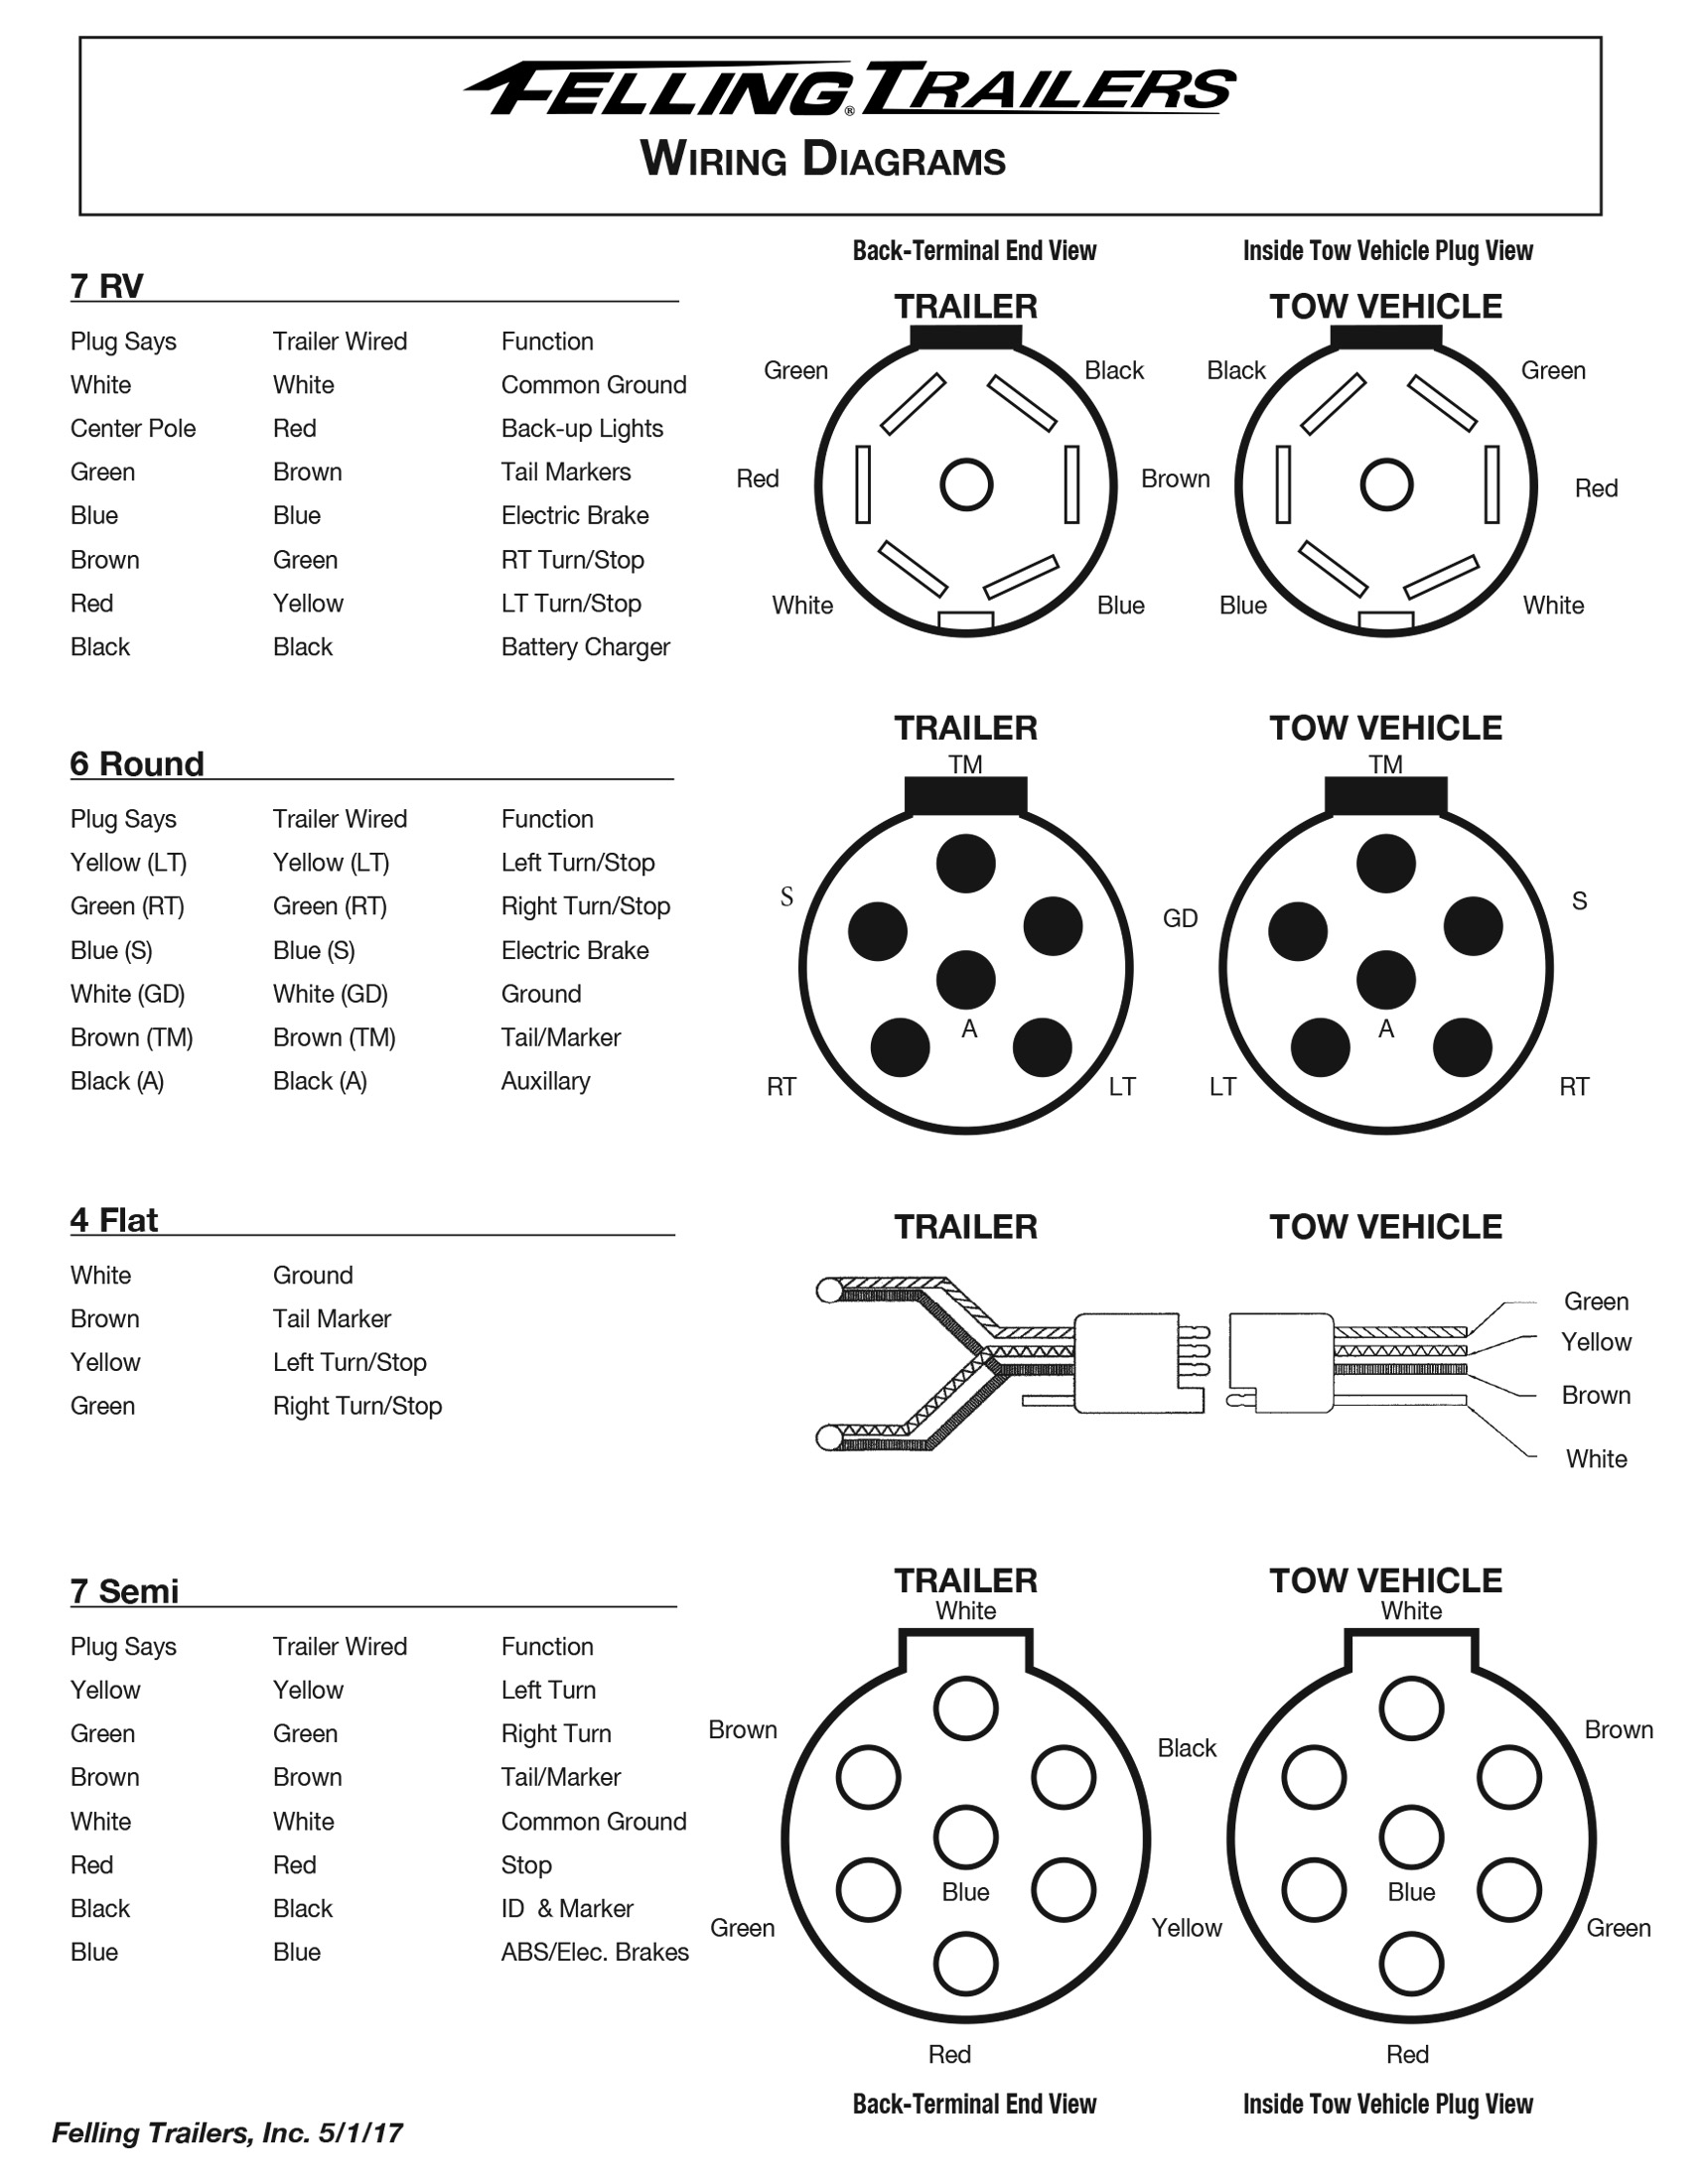 wiring diagrams for trailers asco 8210 diagram service felling wheel toque